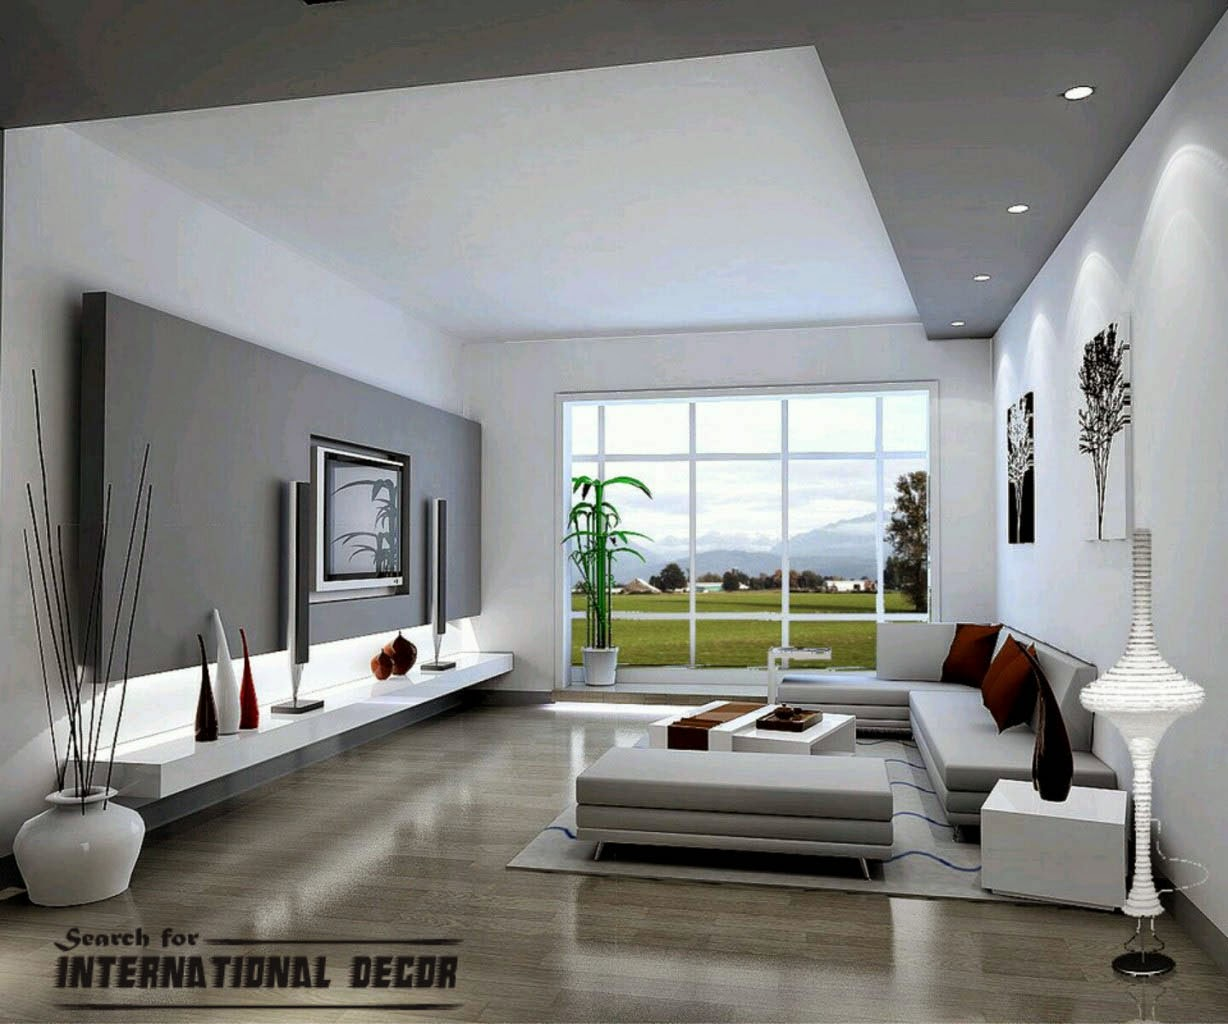 5 ways to make modern home decor and design for Interior home decorations